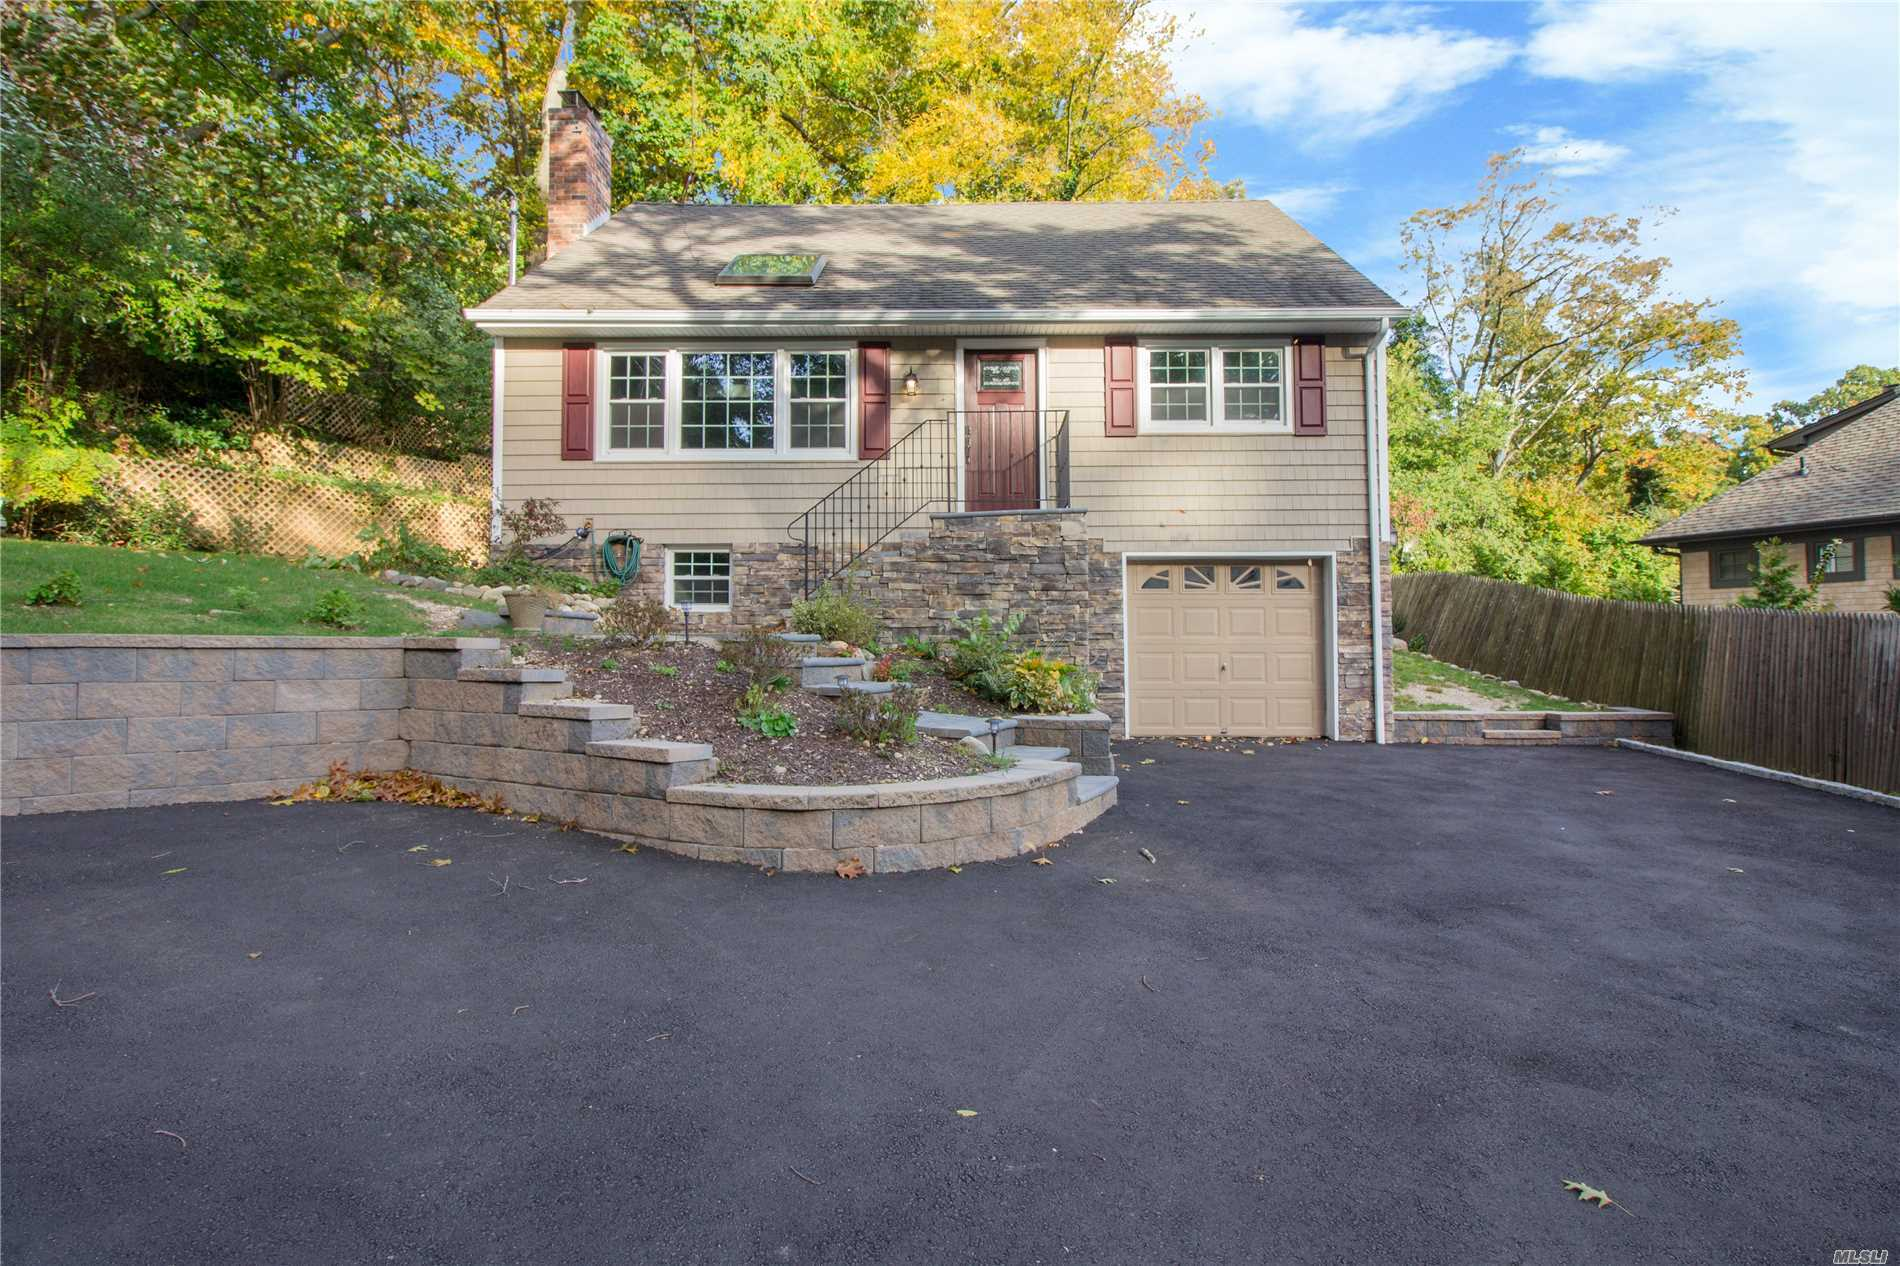 Completely Renovated Interior And Exterior. New Kitchen W/ Quartz Countertops And Stainless Steel Appliances. Bedrooms Have Nice Sized Closets. Energy Efficient High Hats Throughout House. Cac, Windows, Siding And Fully Renovated Basement With Entrance To Garage.Tax Grievance In Process!!